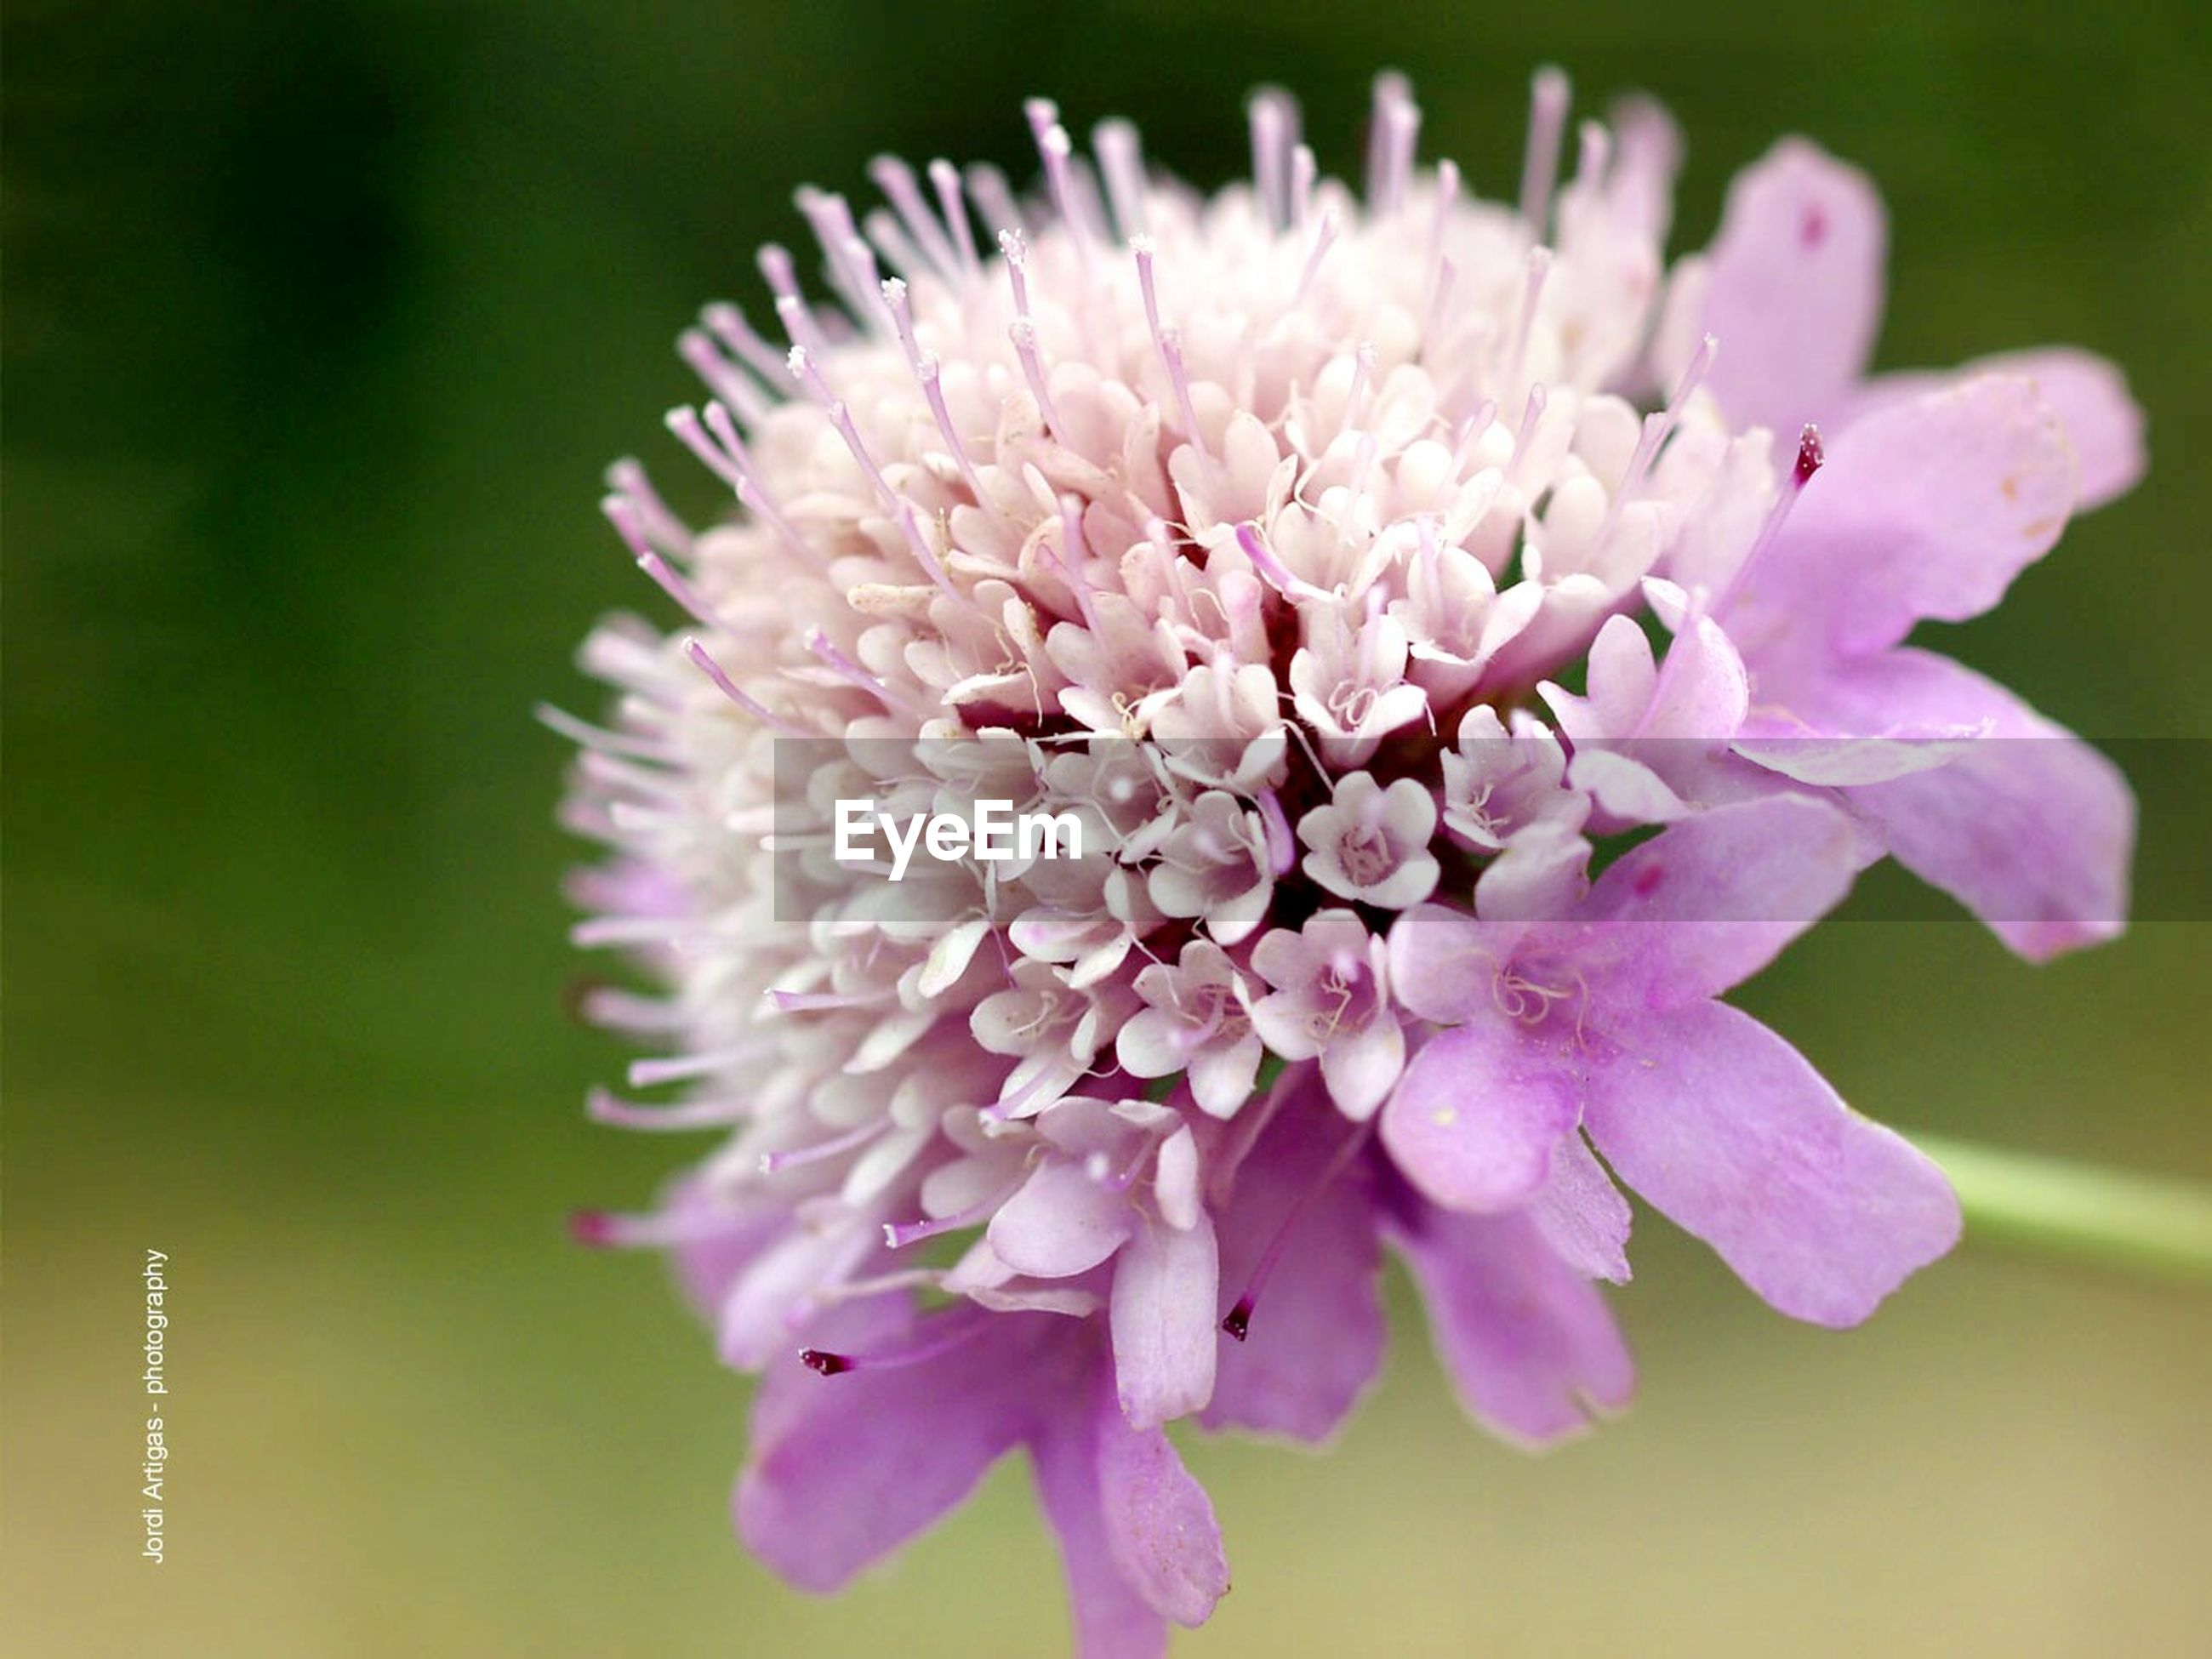 flower, freshness, petal, fragility, flower head, growth, close-up, beauty in nature, focus on foreground, nature, blooming, in bloom, plant, pollen, selective focus, blossom, single flower, stamen, springtime, pink color